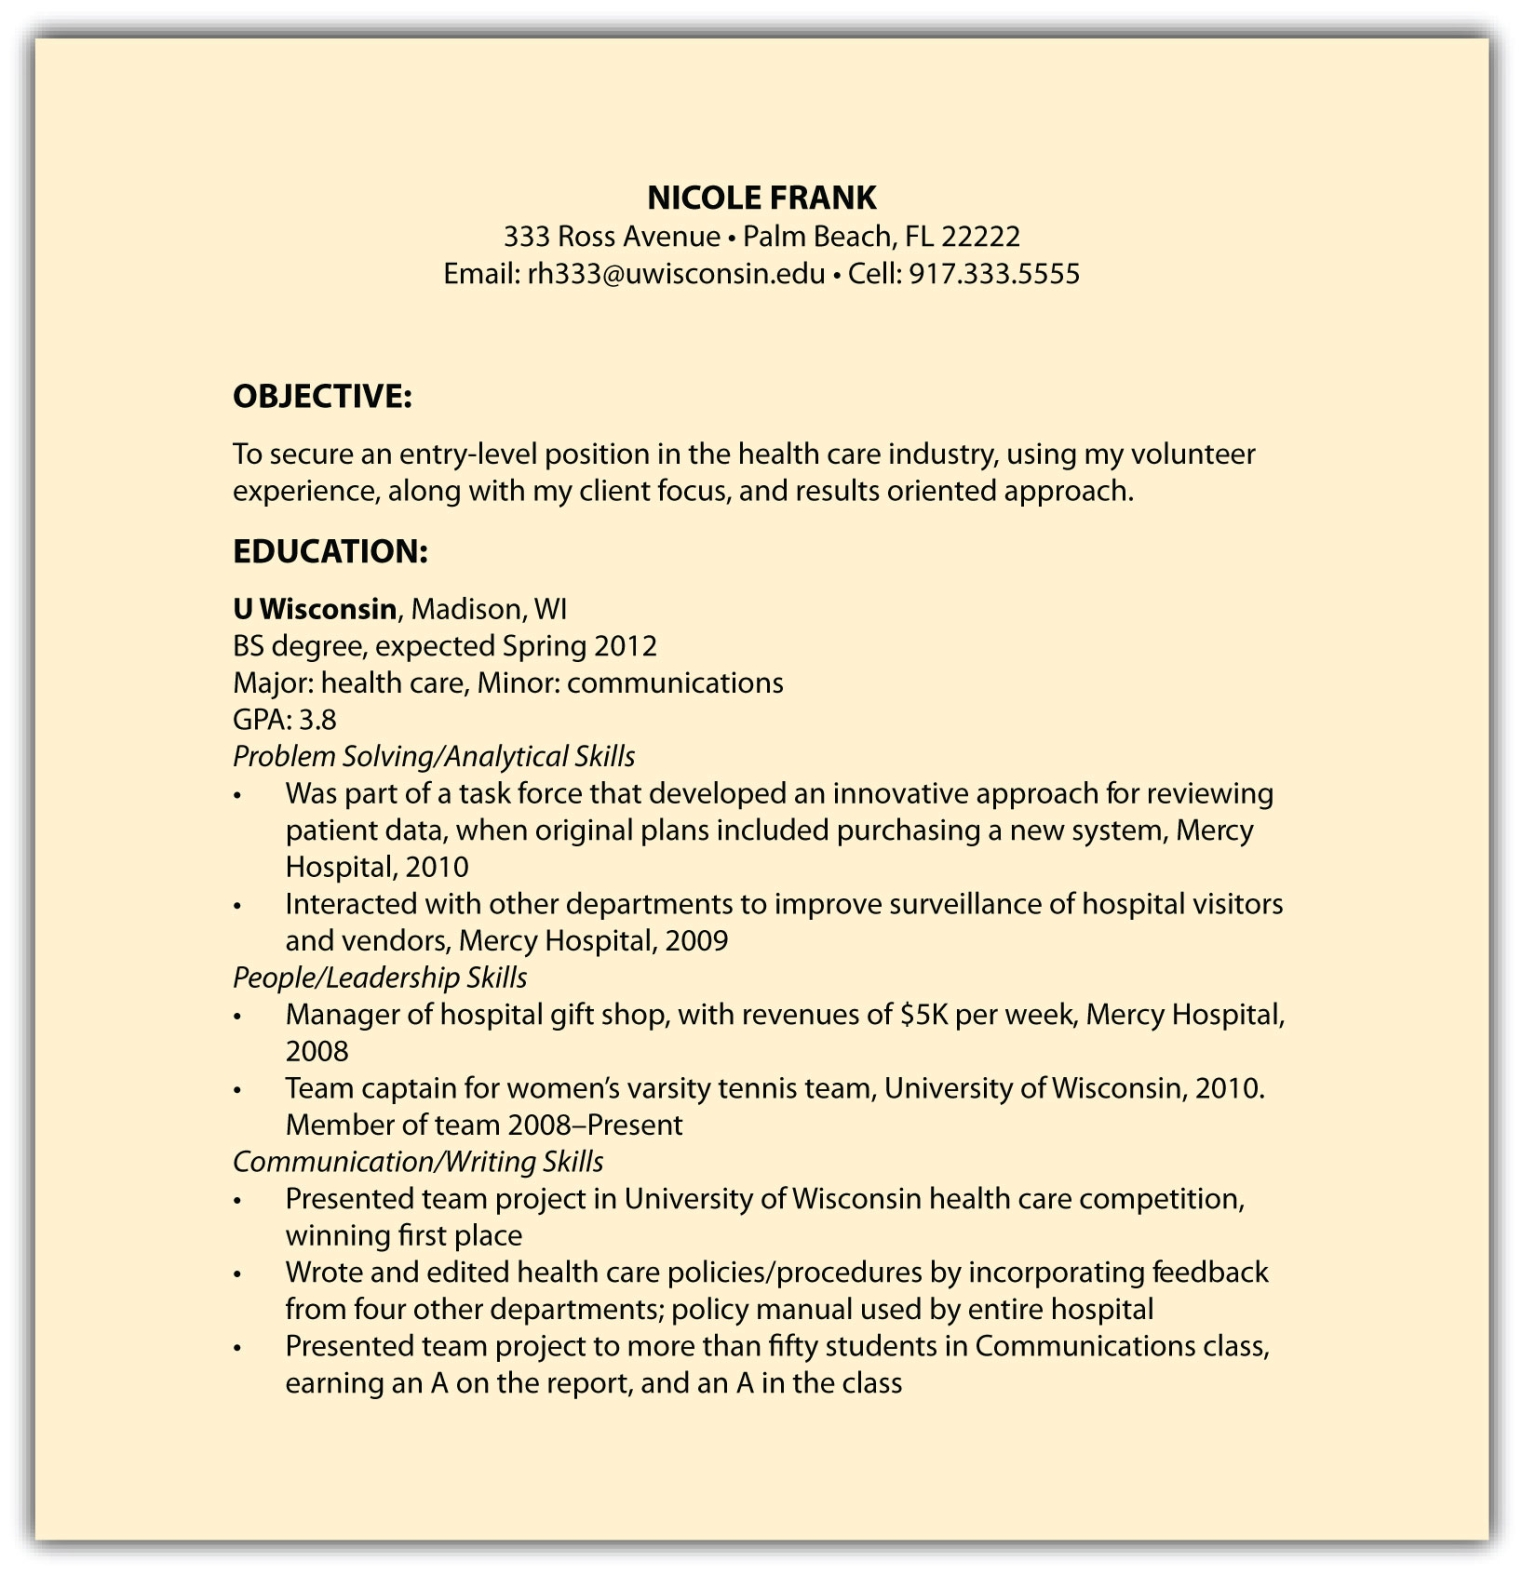 Simple Job Application Cover Letter Uk Healthcare